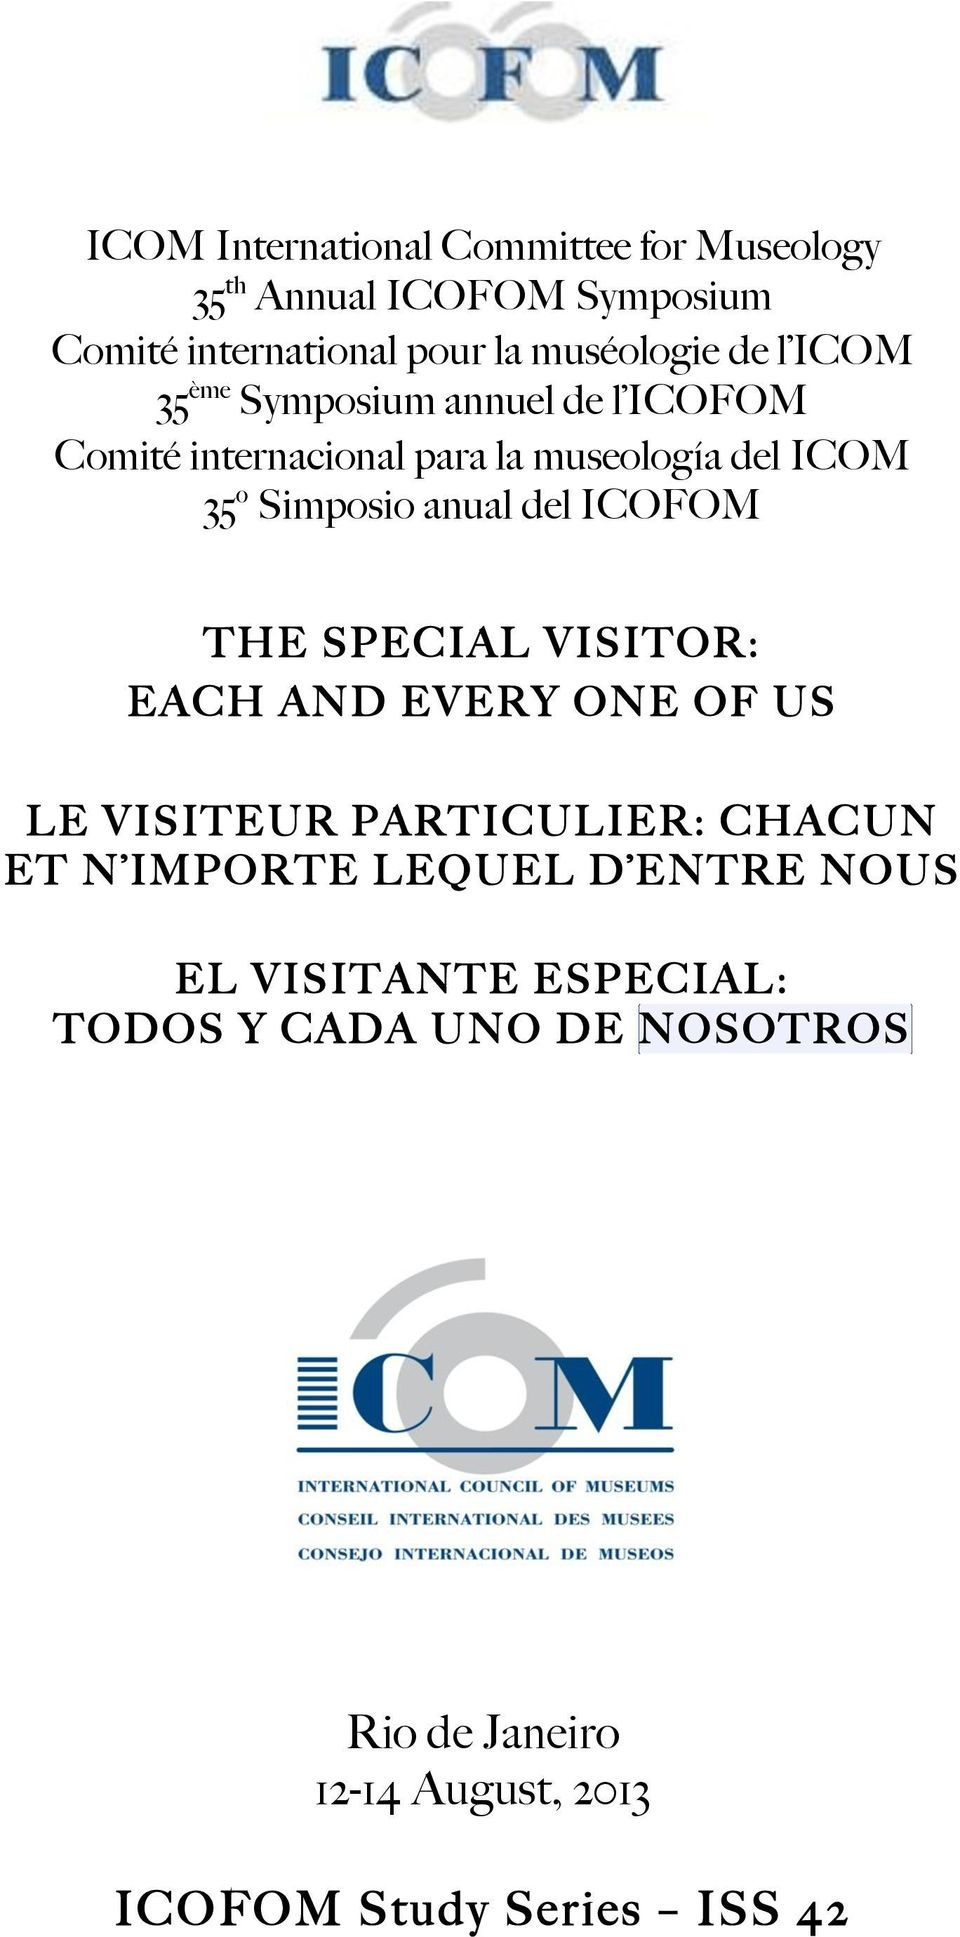 ICOFOM THE SPECIAL VISITOR: EACH AND EVERY ONE OF US LE VISITEUR PARTICULIER: CHACUN ET N IMPORTE LEQUEL D ENTRE